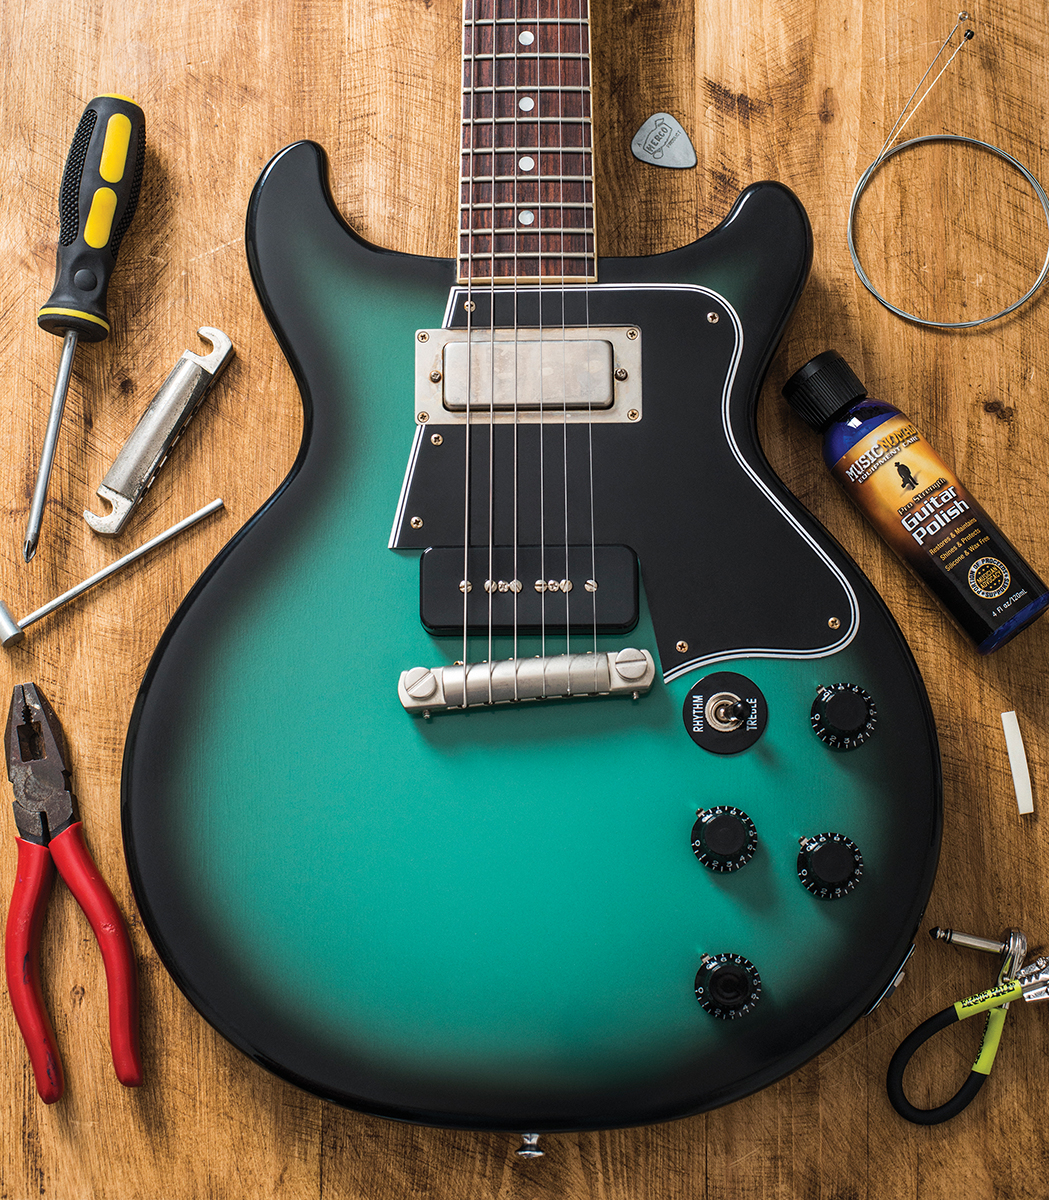 we know, we know… you'd rather play your guitar than spend time fixing it  up  but if you want it to play well, and if you want to be able to rely